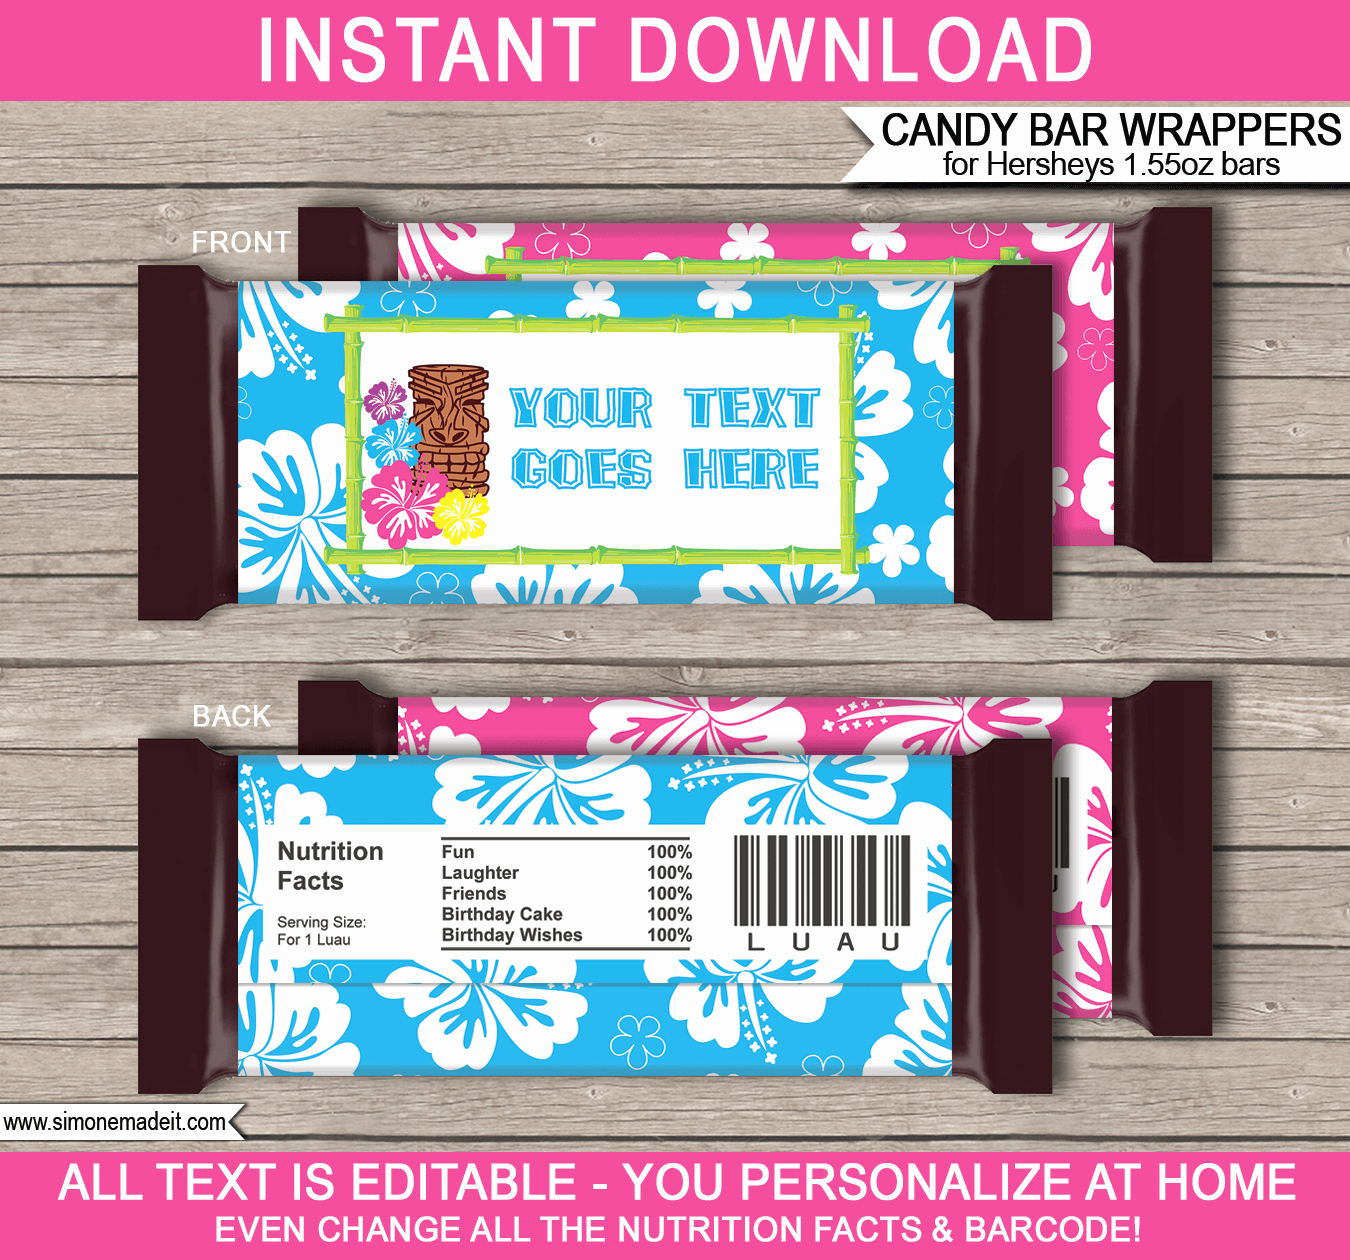 Luau Hershey Candy Bar Wrappers